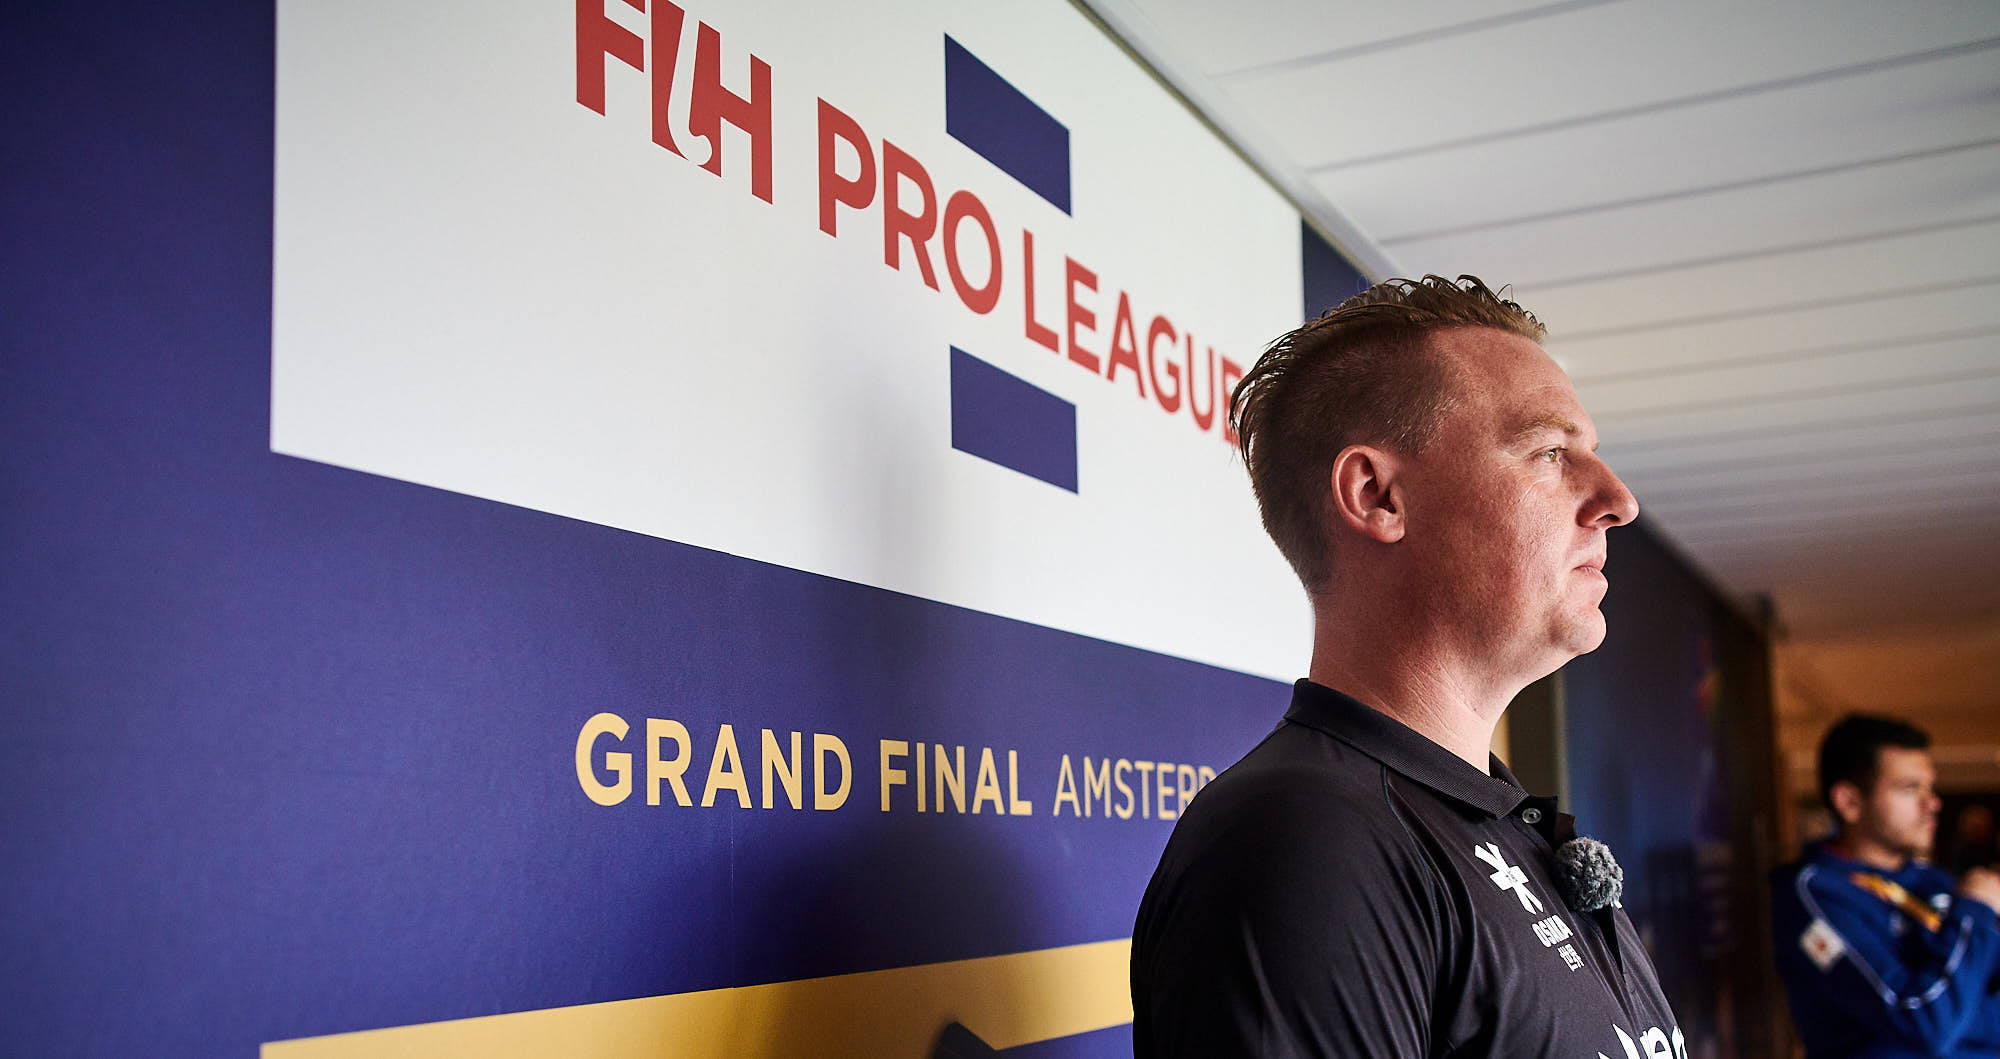 FIH refere during Pro League finals in Amsterdam